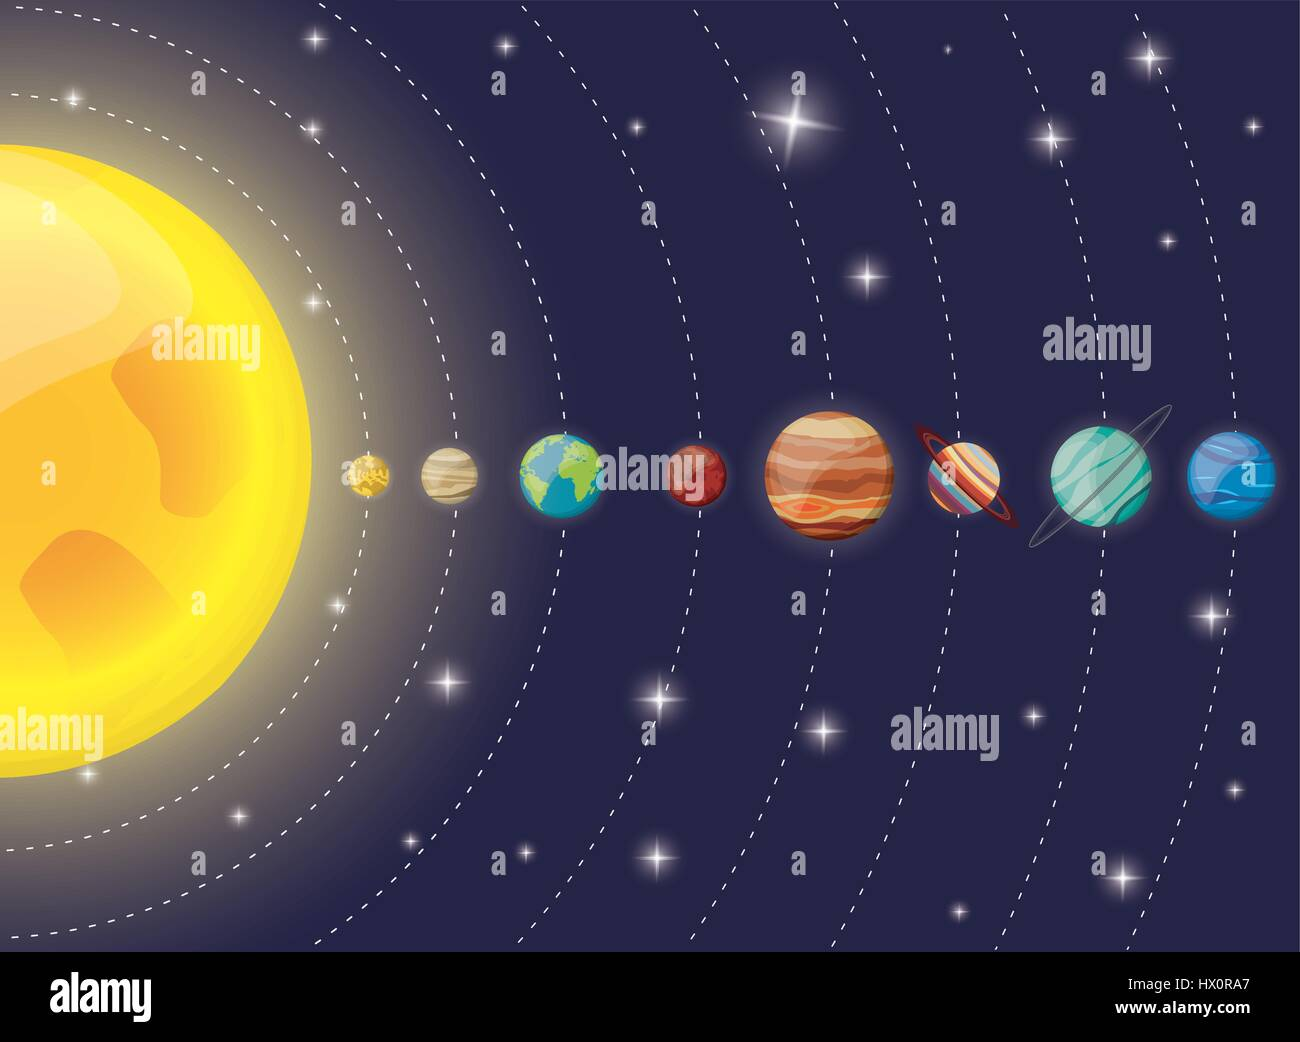 Images Of Solar System Planets - impremedia.net